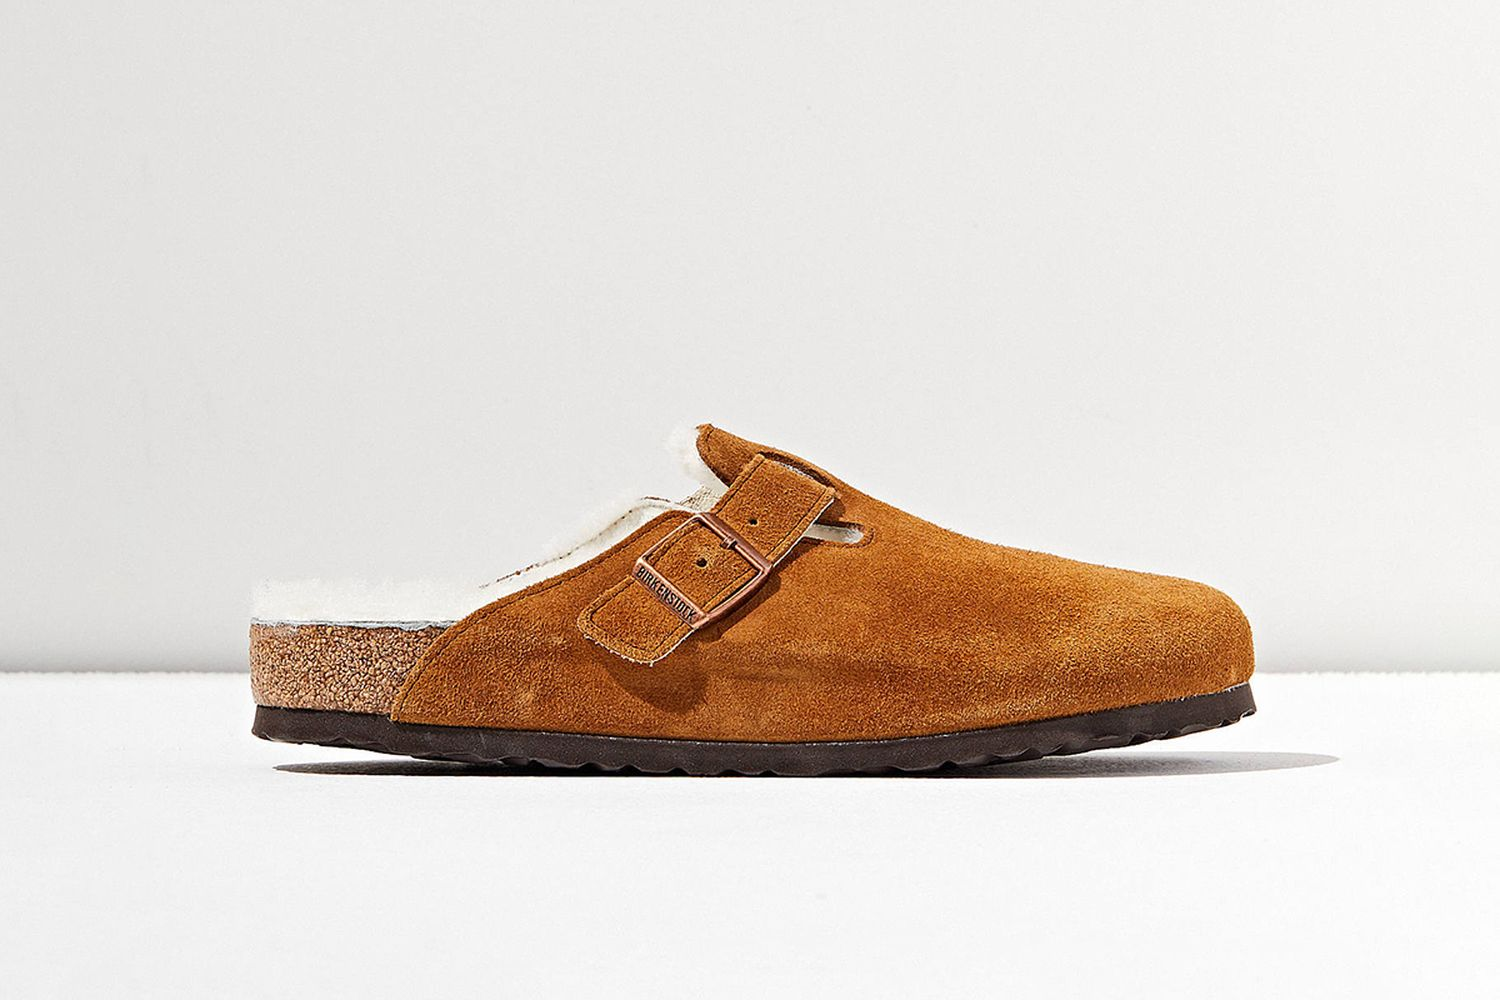 Boston Shearling Lined Clog